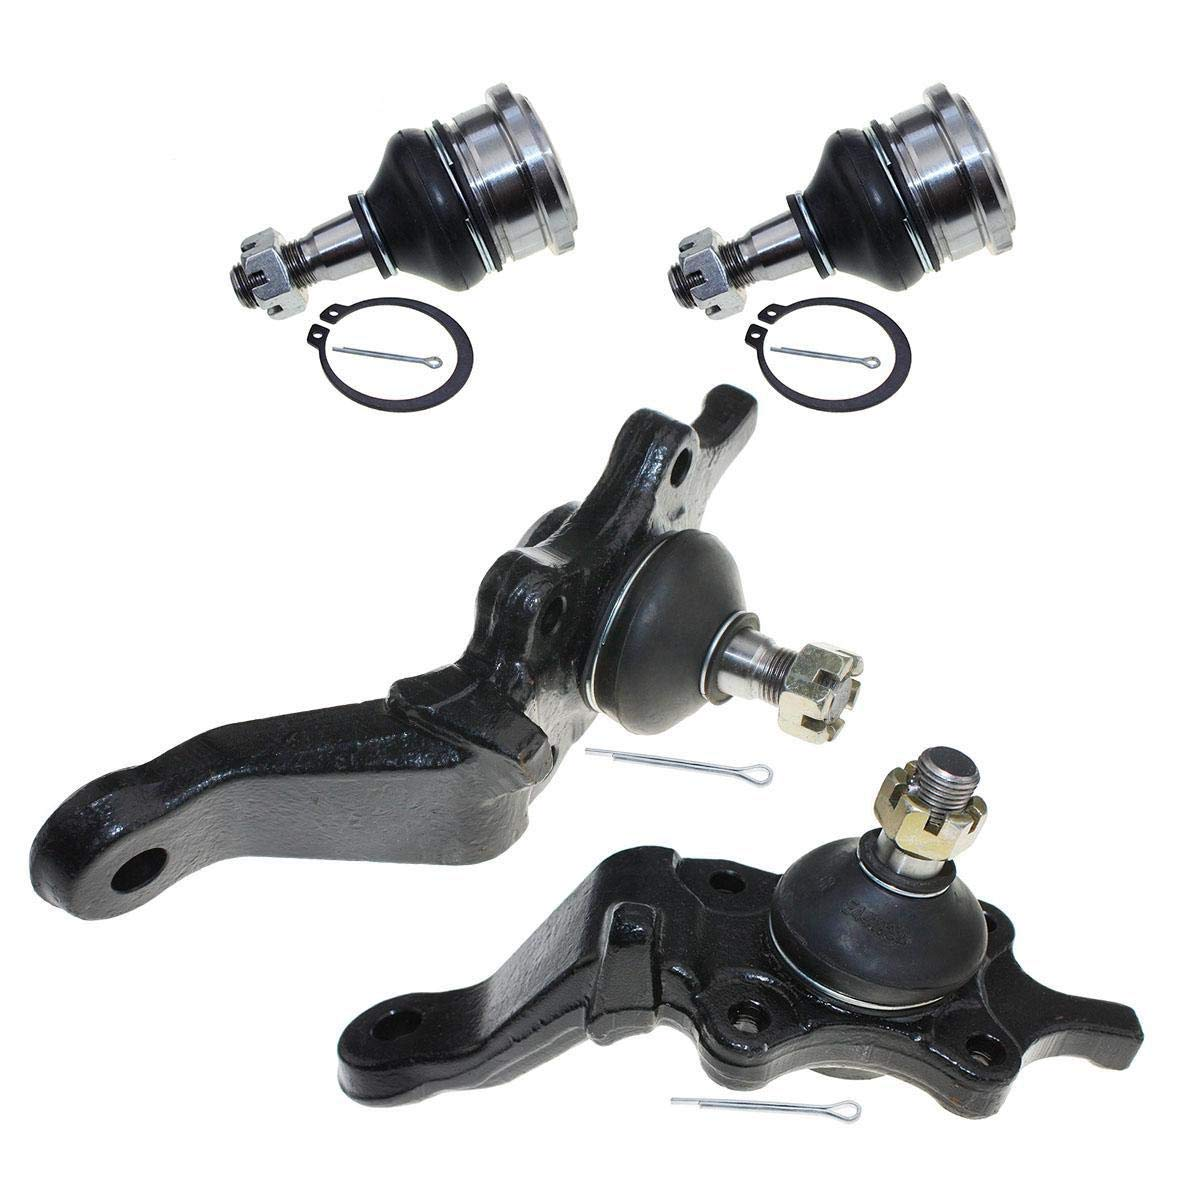 2 Sway Bar Compatible with 1996 1997 1998 1999 2000 2001 2002 Toyota 4Runner K90255 EV433 K90681 K90262 ES3547 2 Inner 2 Outer Tie Rod End DLZ 10 Pcs Front Suspension Kit-2 Lower 2 Upper Ball Joint